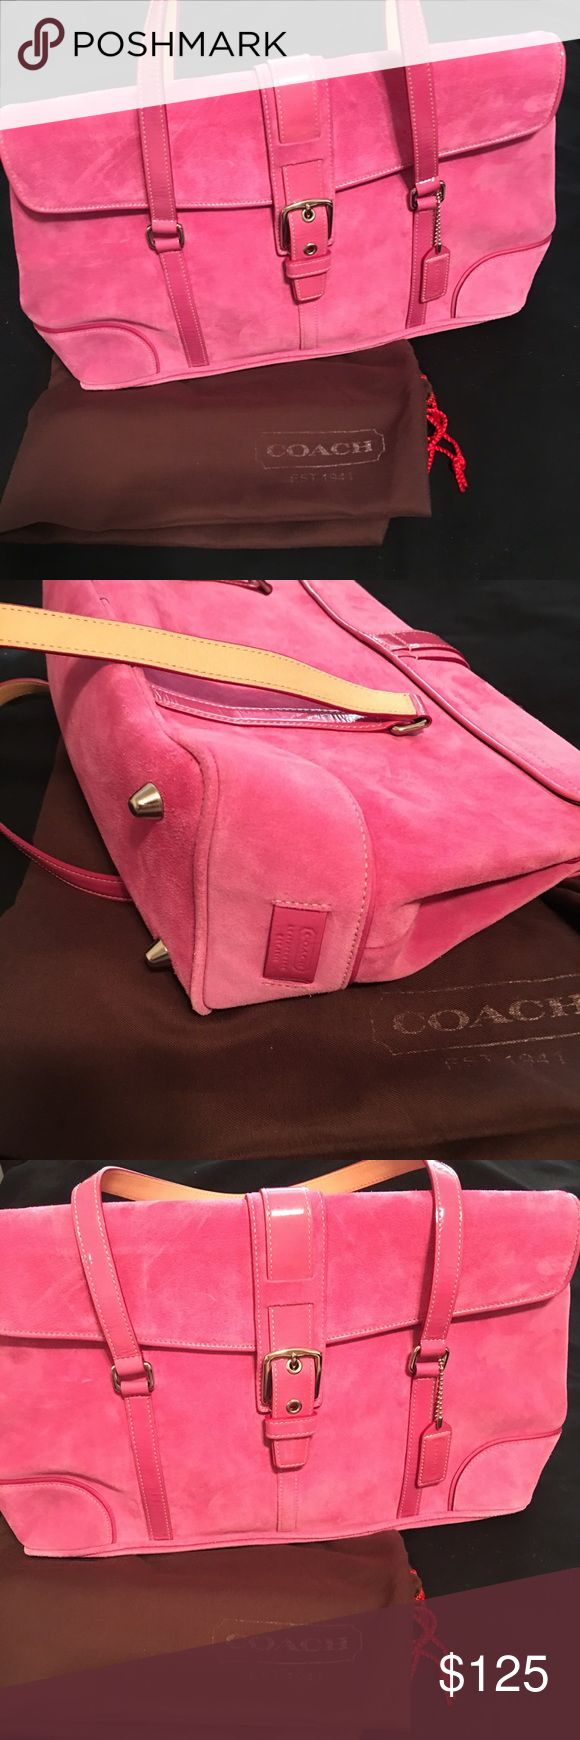 NWT Brand New Pink Suede Coach handbag💕 NWT Brand New Pink Suede Coach handbag💕 Perfect for the new season and could also be a great gift for the holidays!!☺️⛄️❄️💙 Coach Bags Shoulder Bags